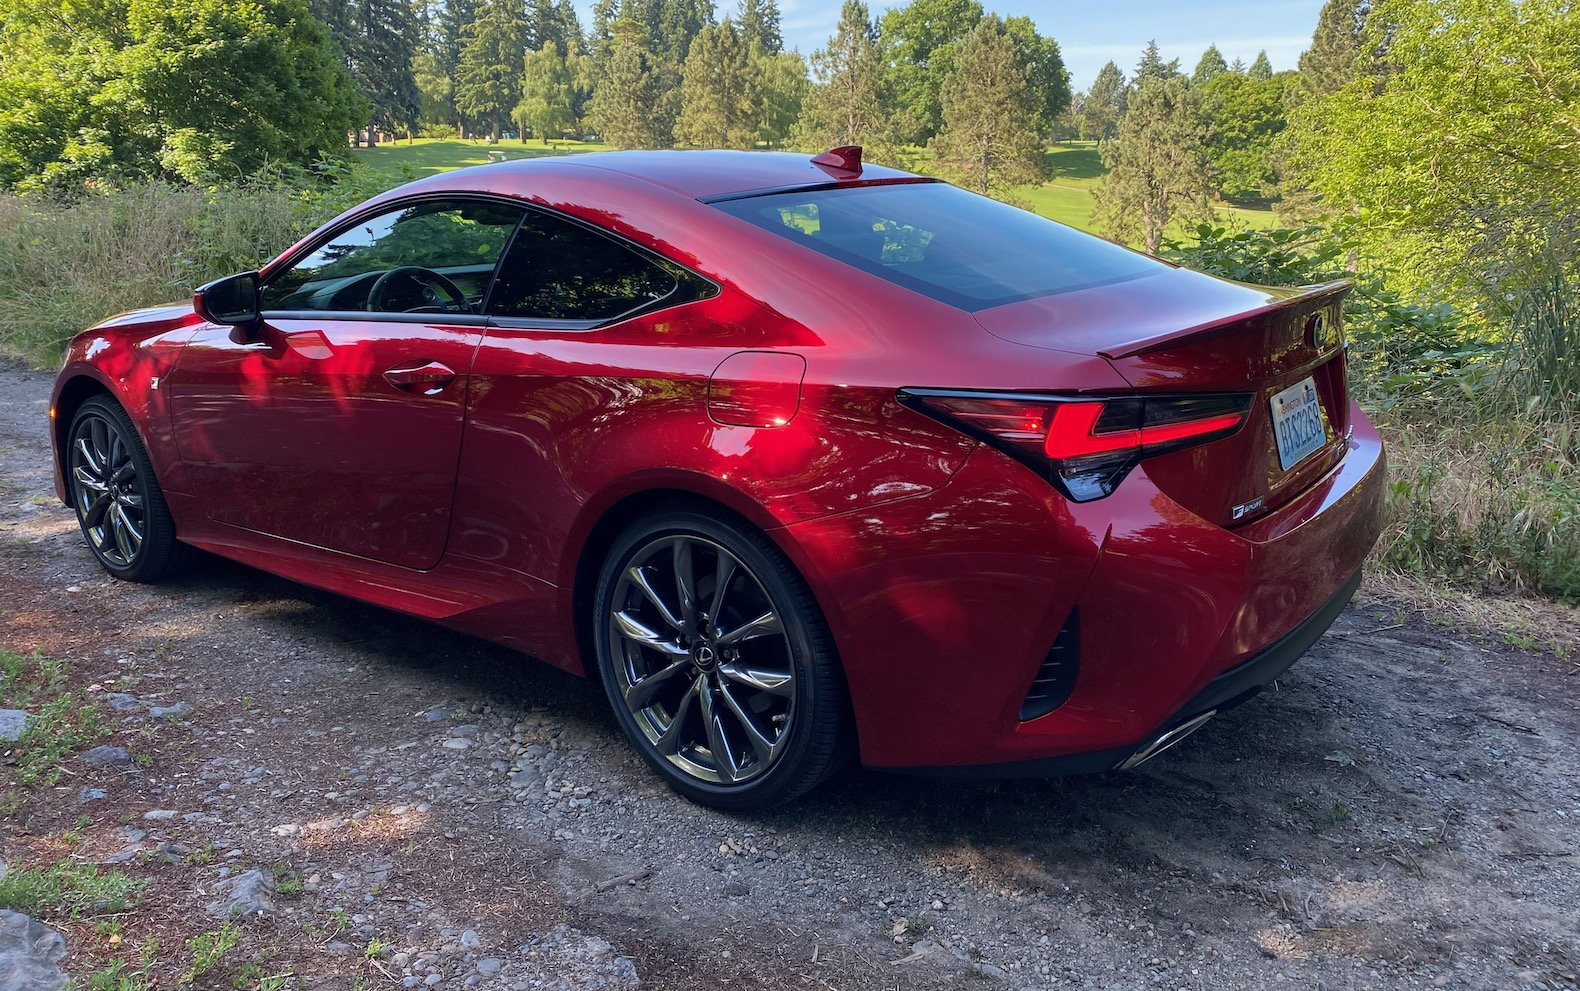 2020 lexus rc 300 awd review: the refined coupe | the